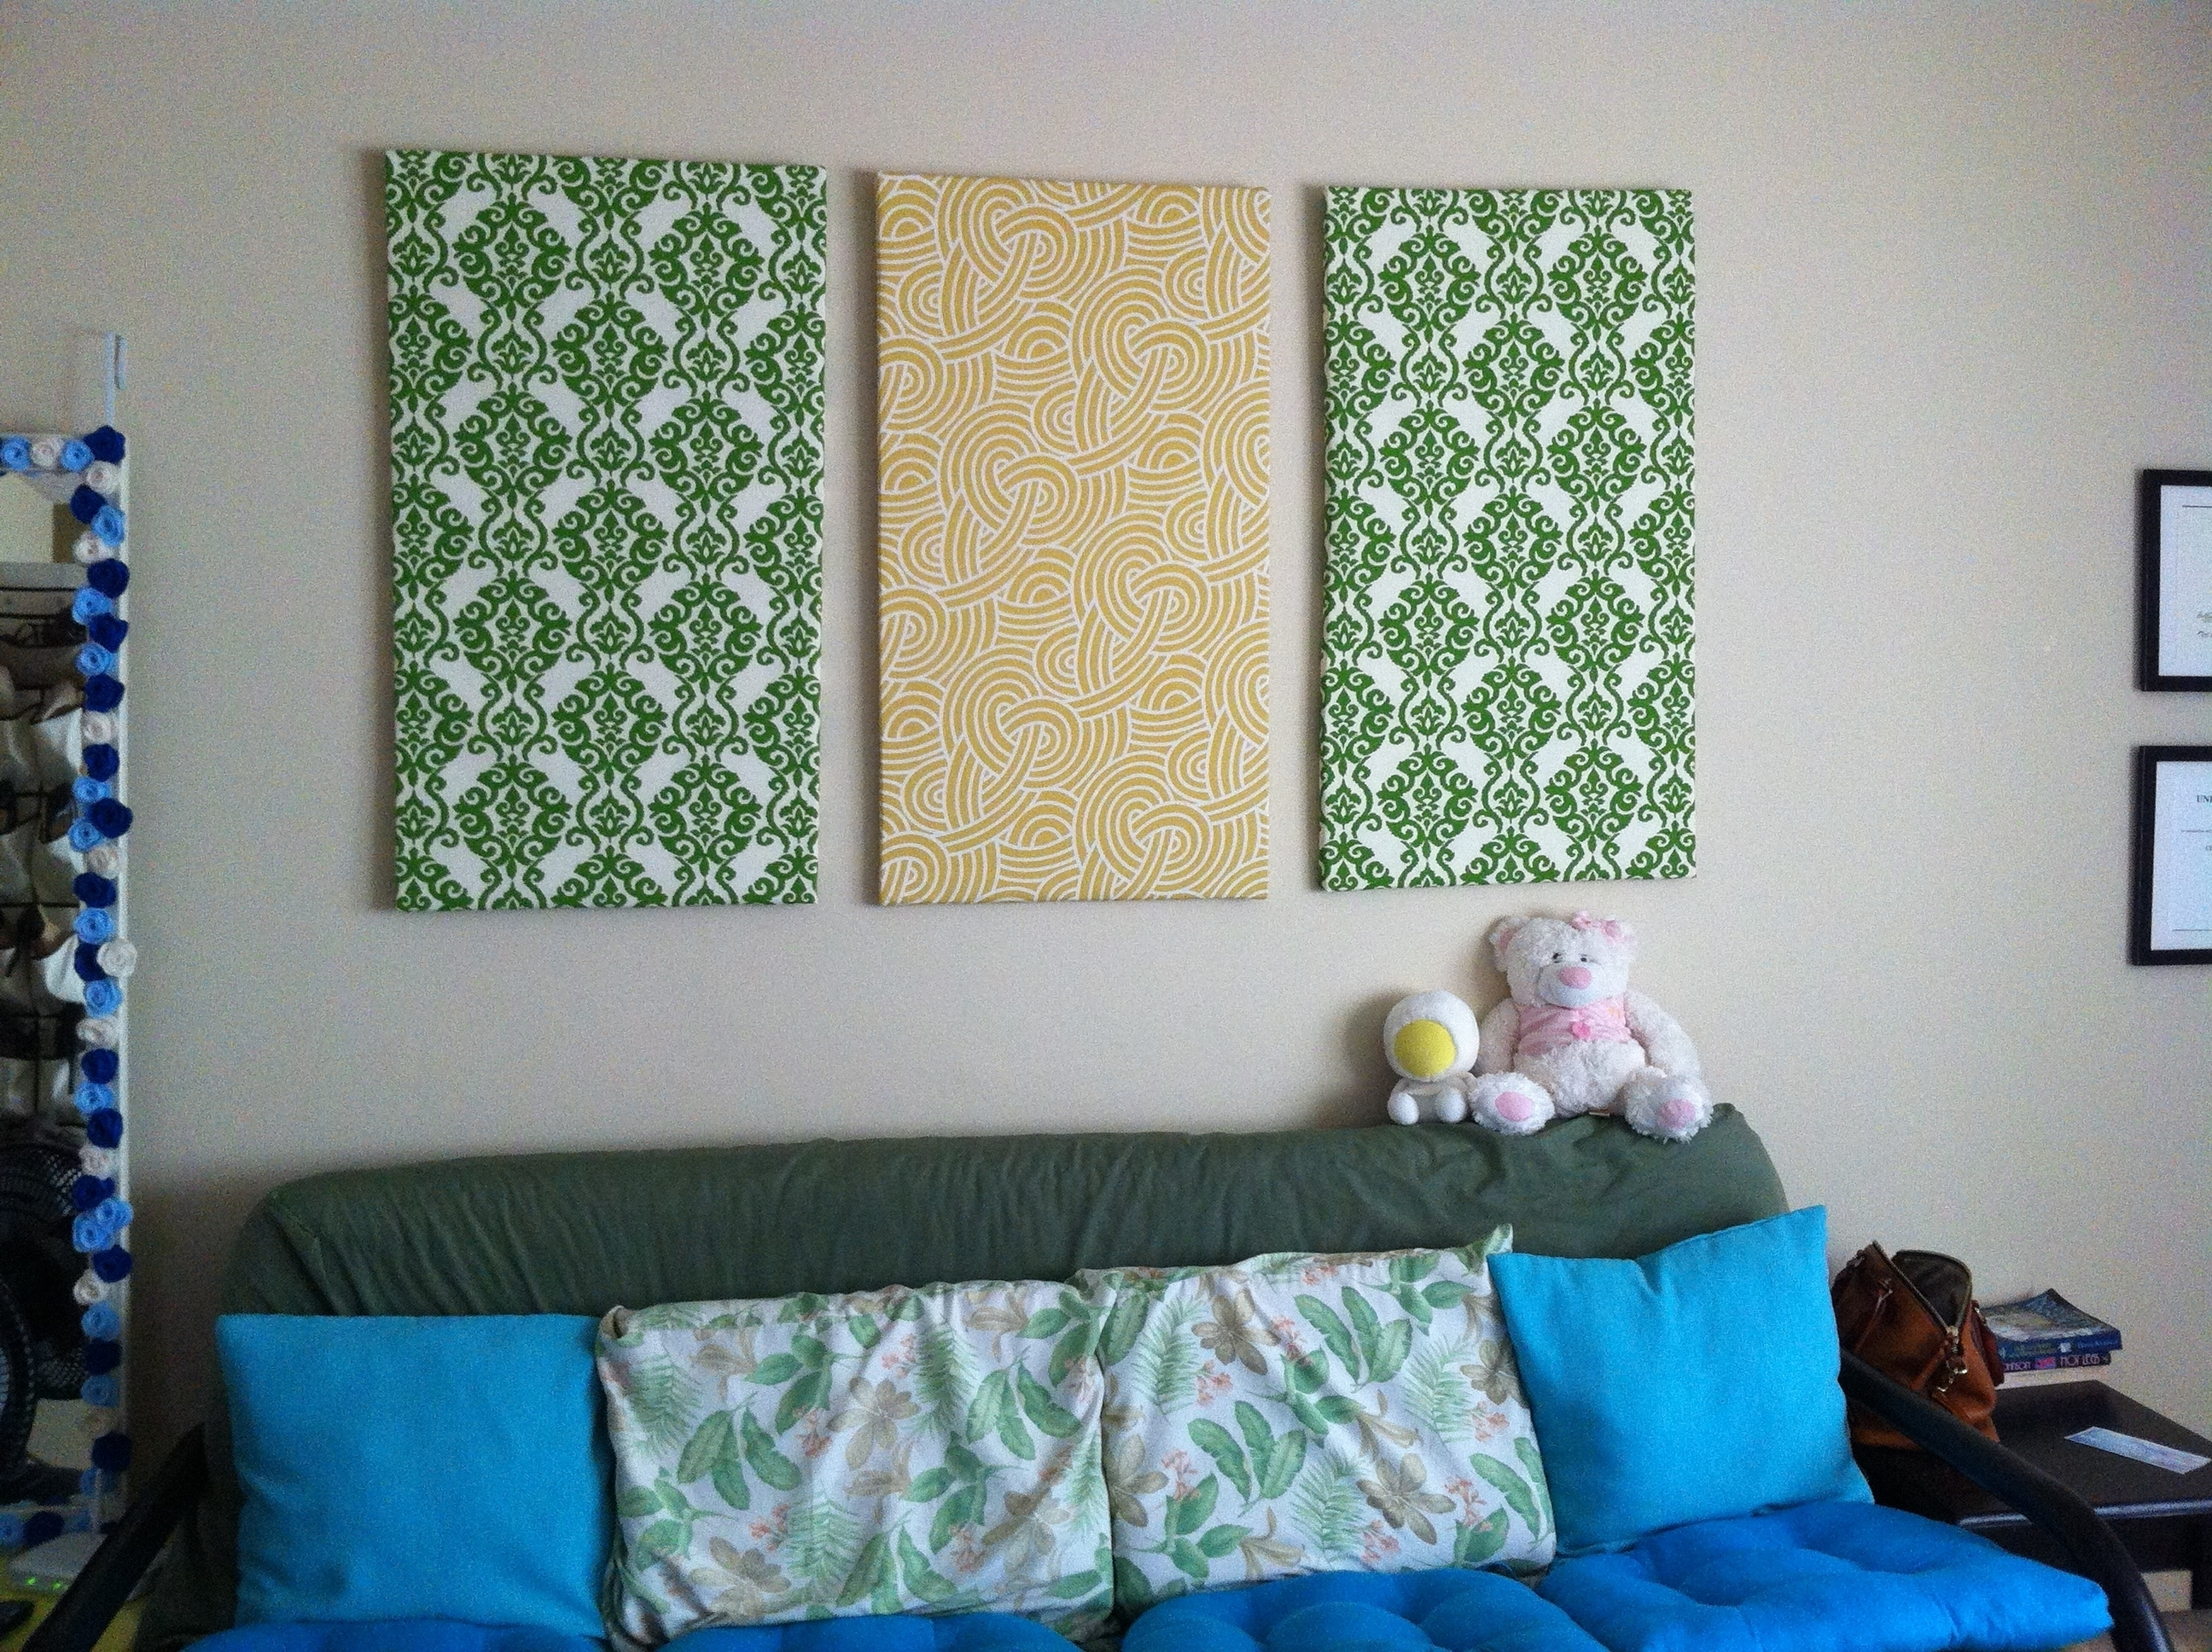 Diy Bedroom Wall Art — The Home Redesign : Some Kind Diy Wall Art With Regard To Most Recently Released Bedroom Fabric Wall Art (View 6 of 15)